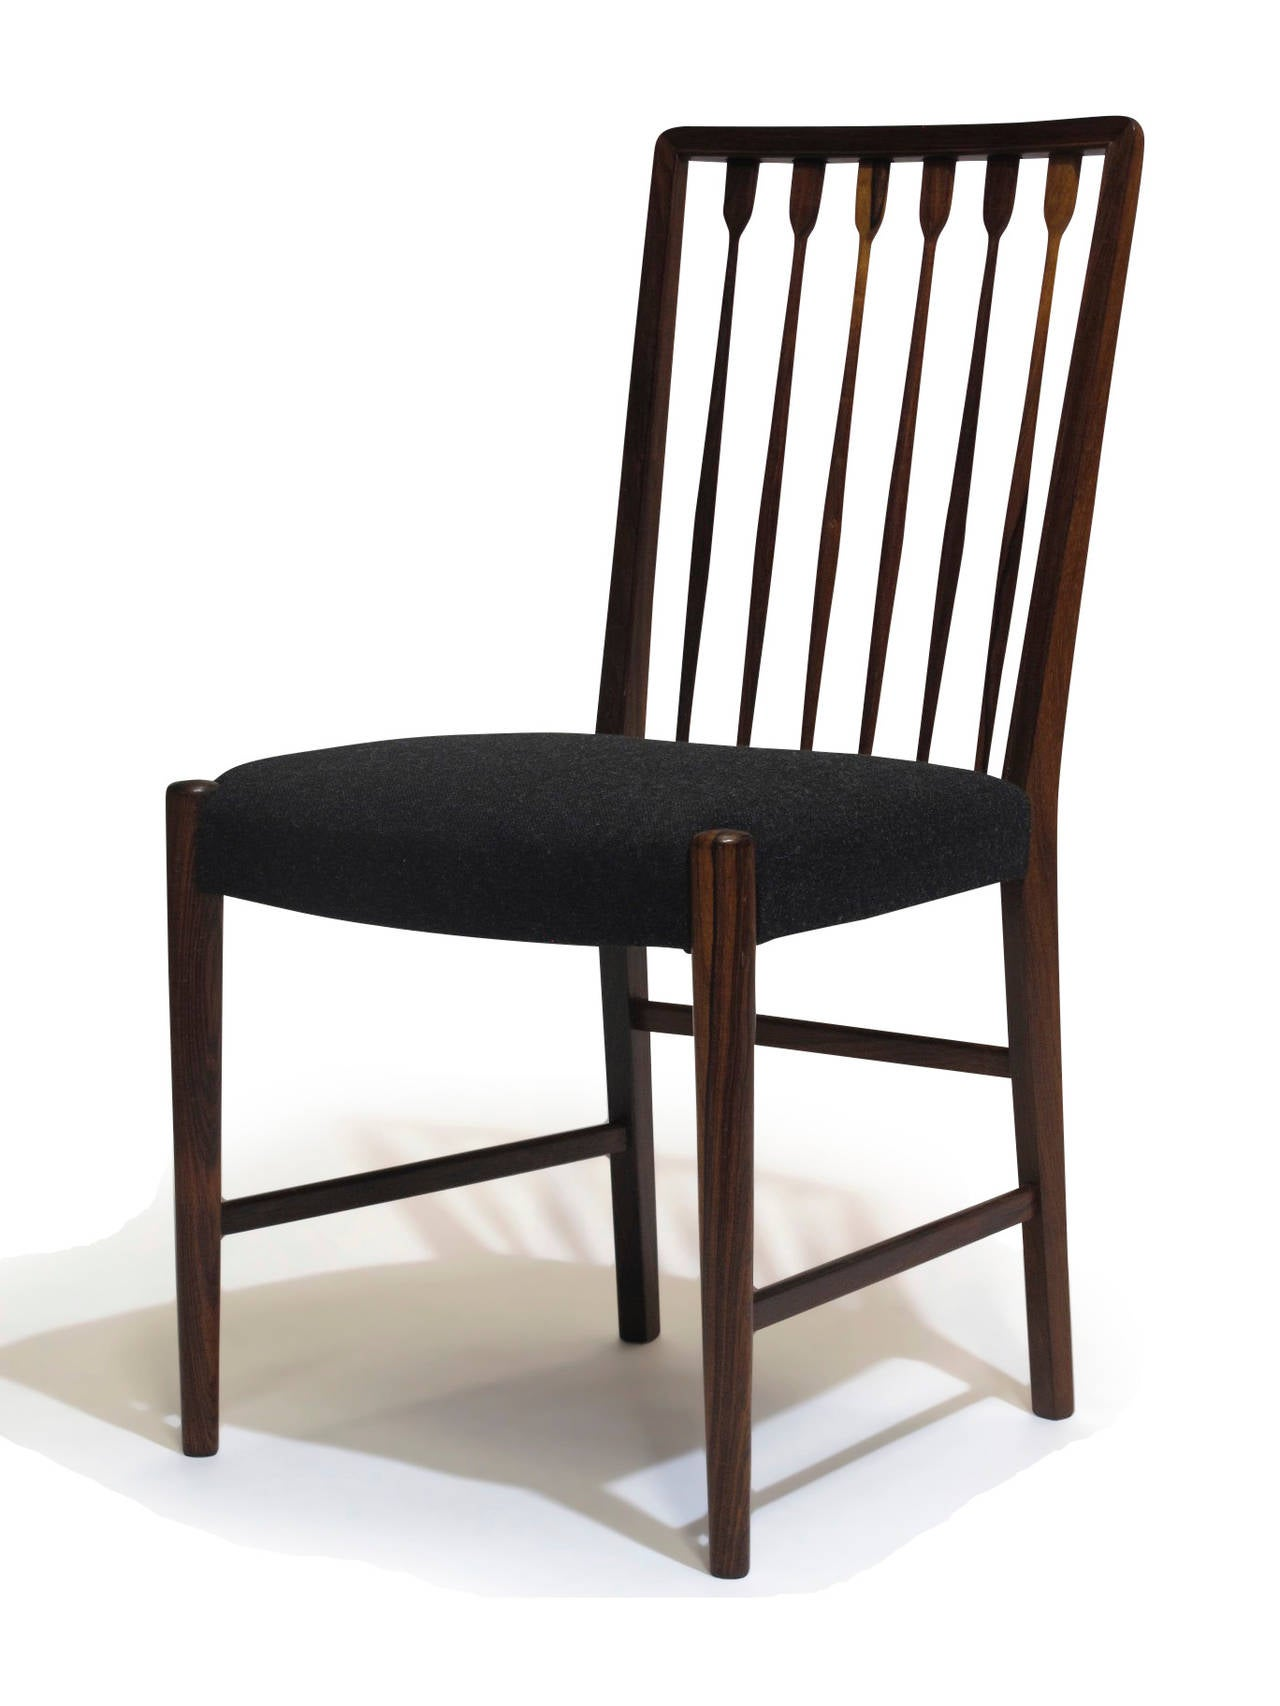 Georg kofoed danish rosewood dining chairs for sale at 1stdibs for Danish dining room chairs